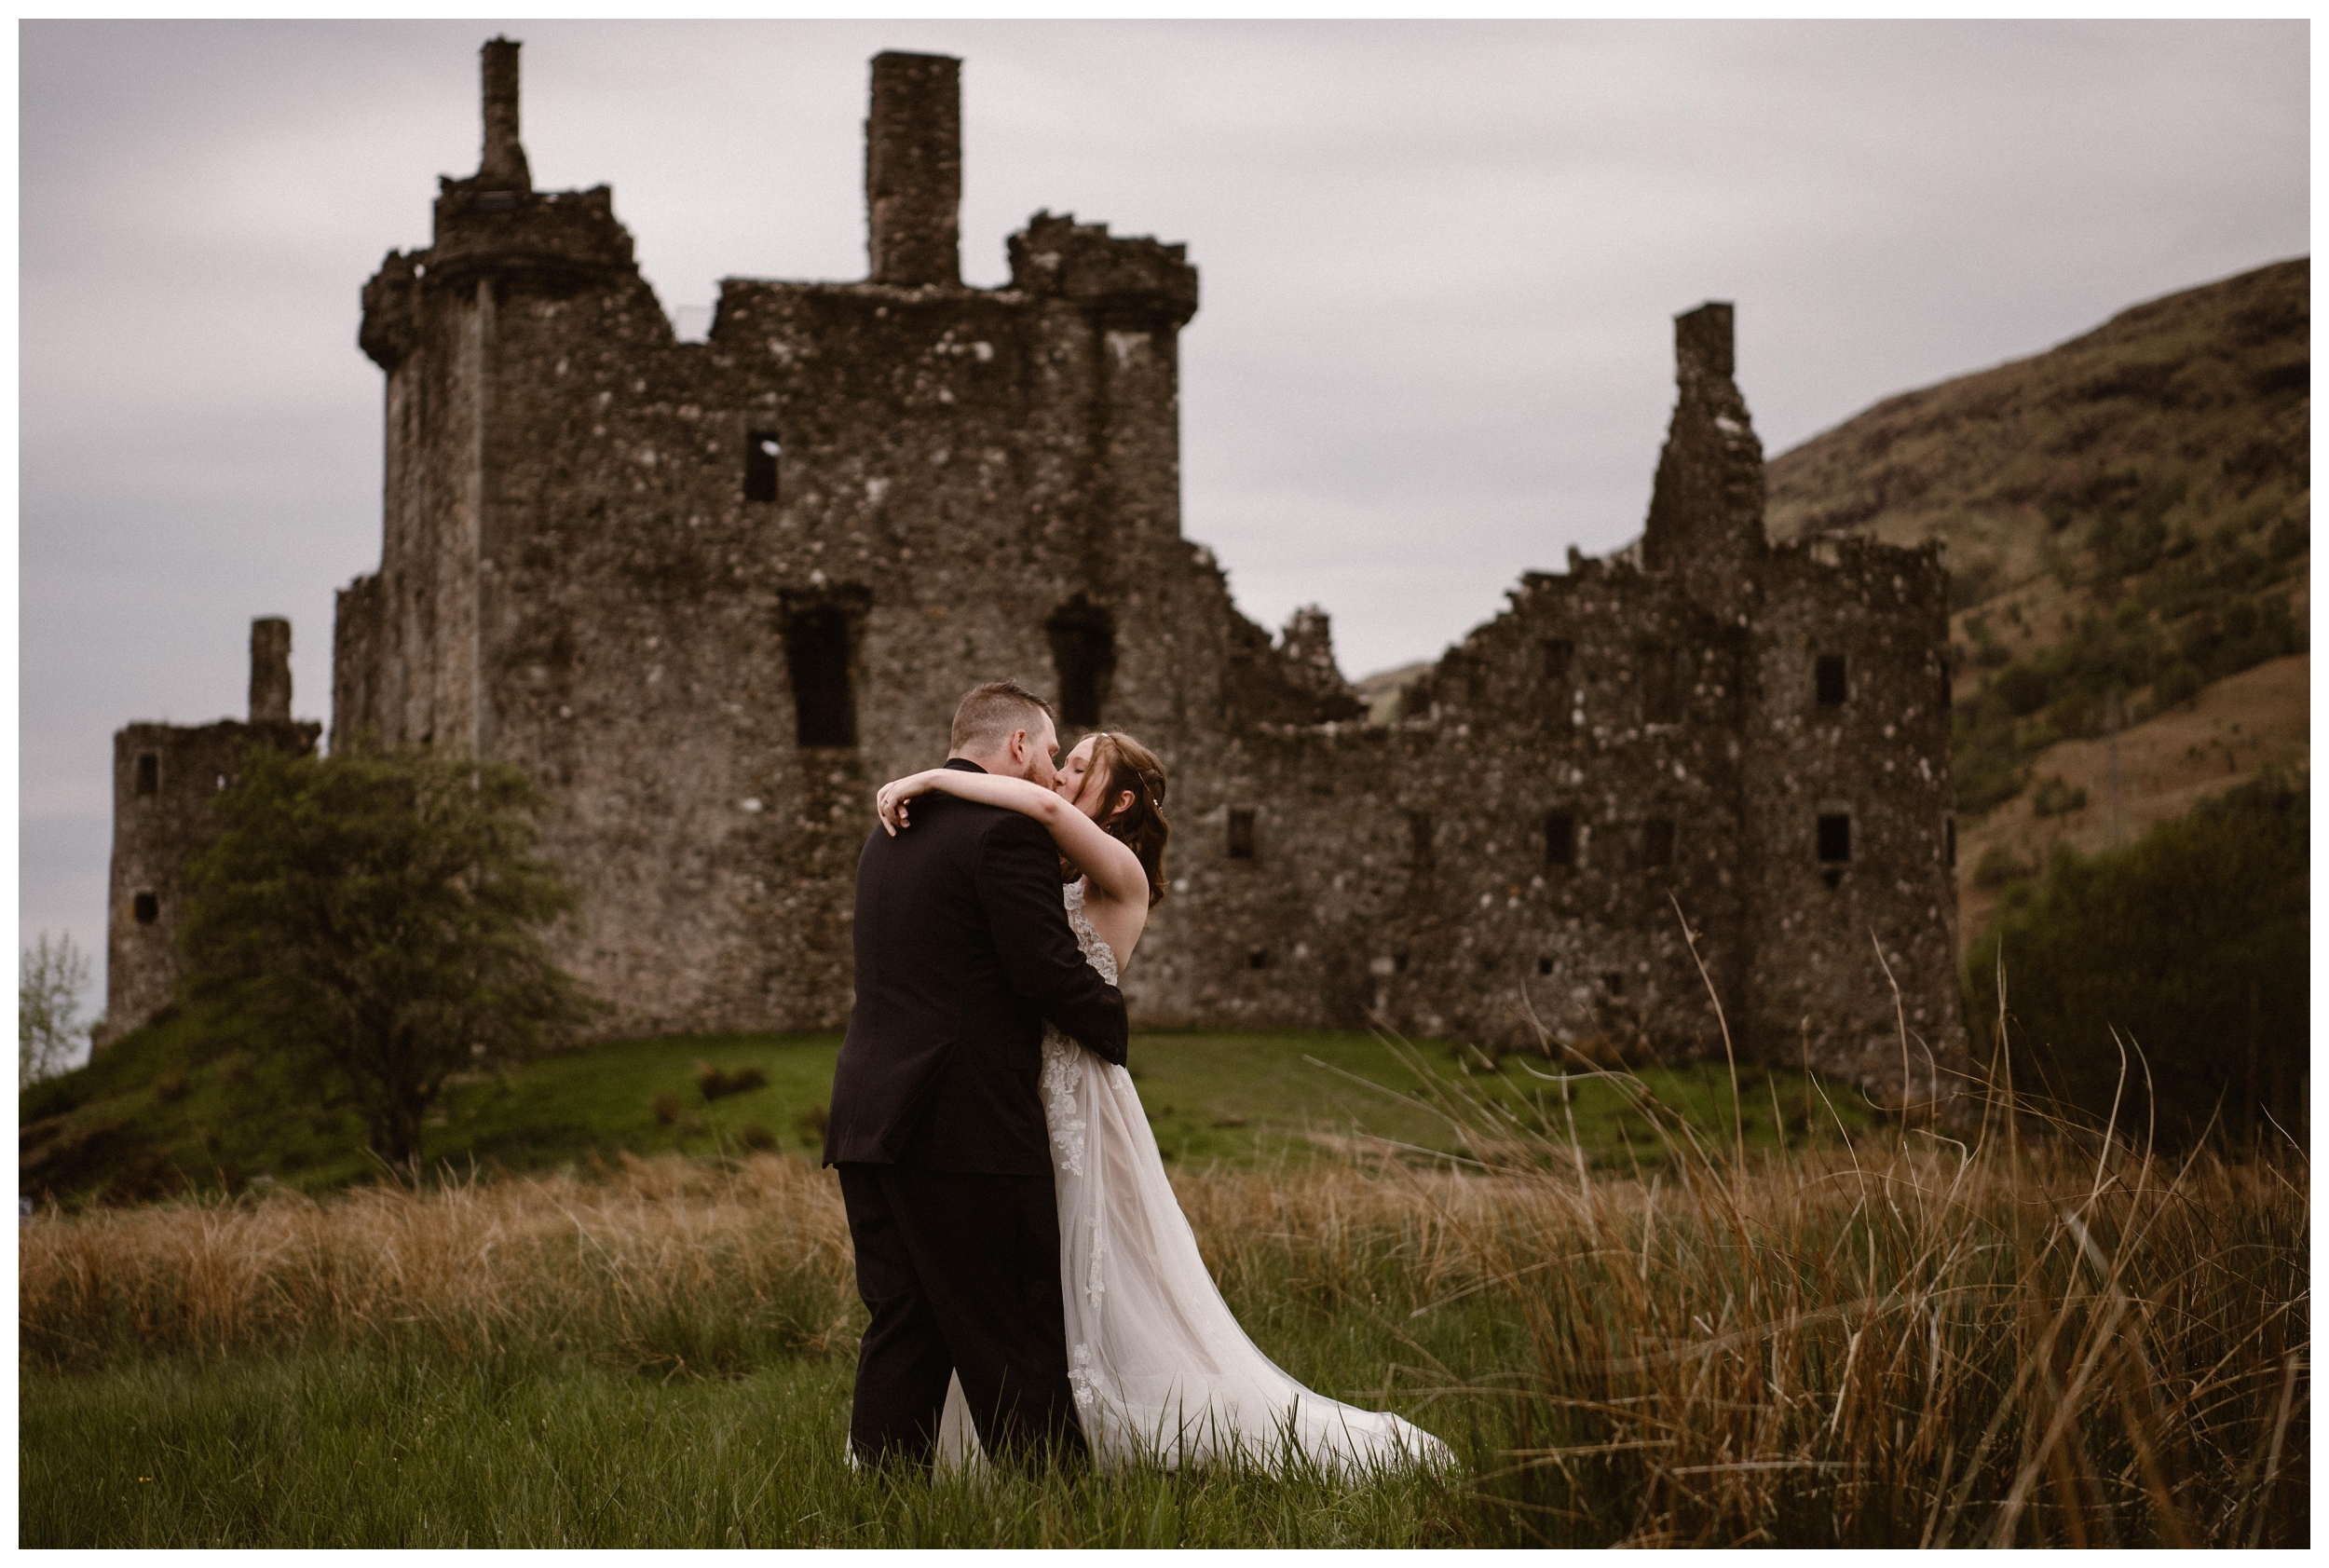 Daniel and Elissa share a kiss during their first look outside the ruins of Kilchurn Castle in Lochawe in the Scottish Highlands. Photo by Maddie Mae, Adventure Instead.